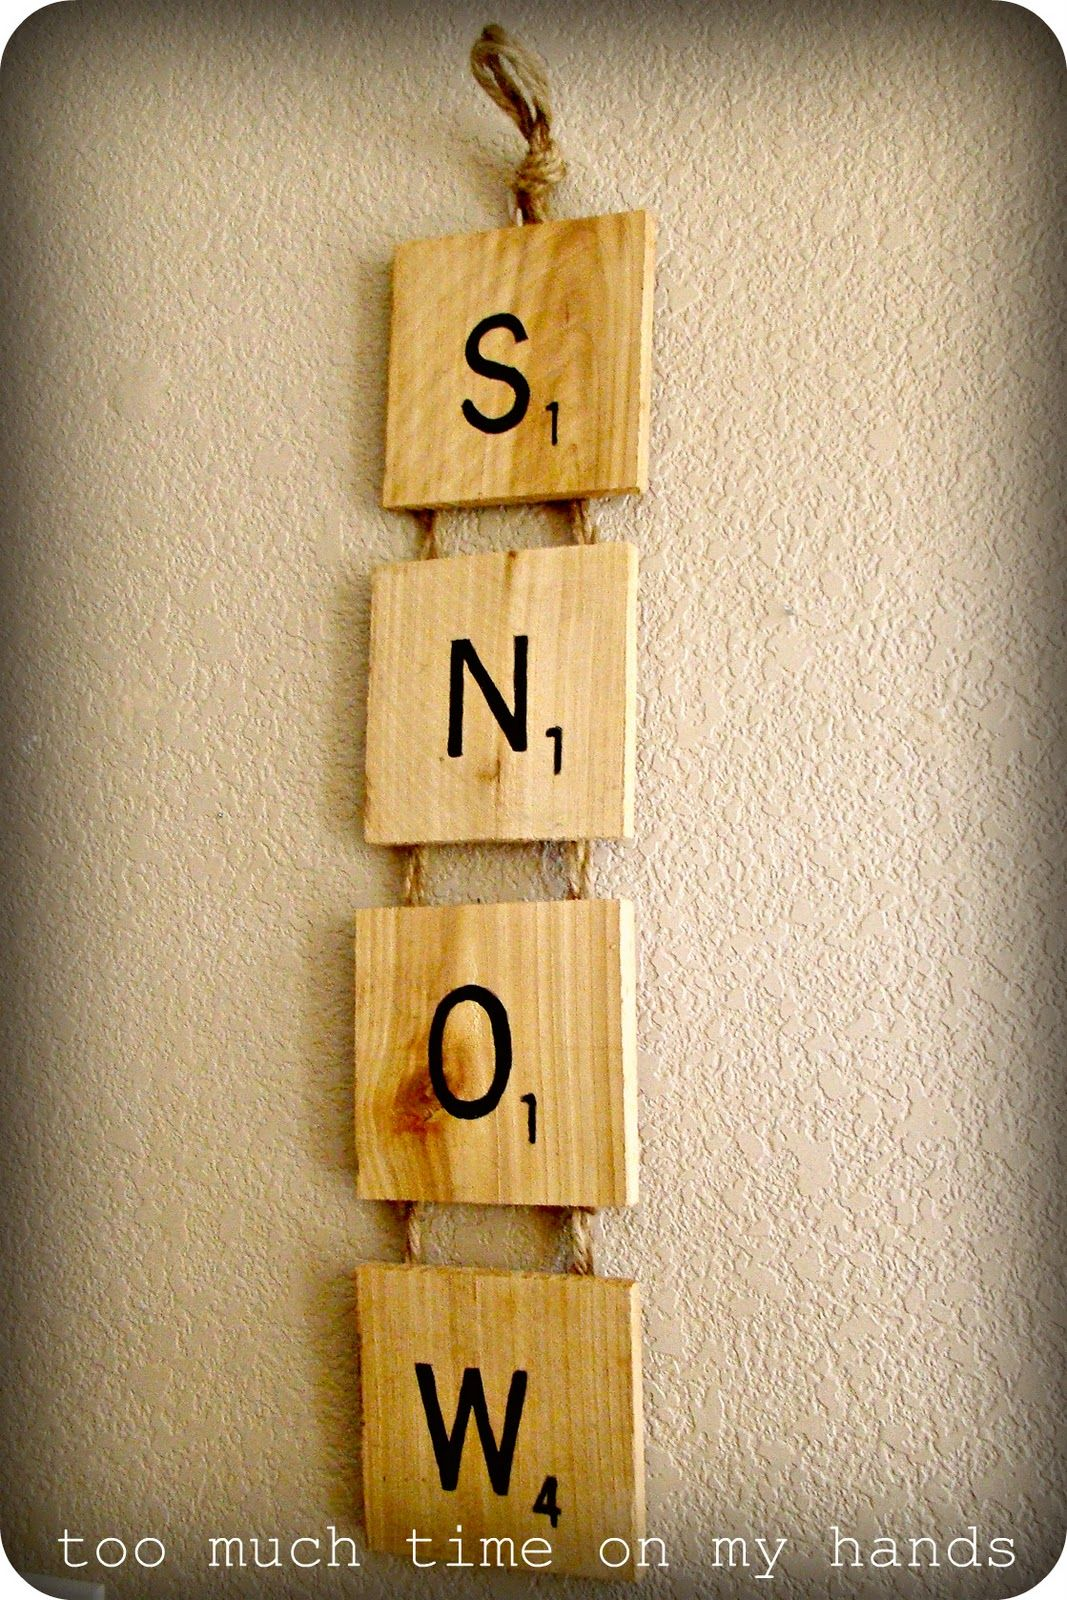 Pin by Cherie Harbour on Holiday Ideas | Pinterest | Scrabble tiles ...